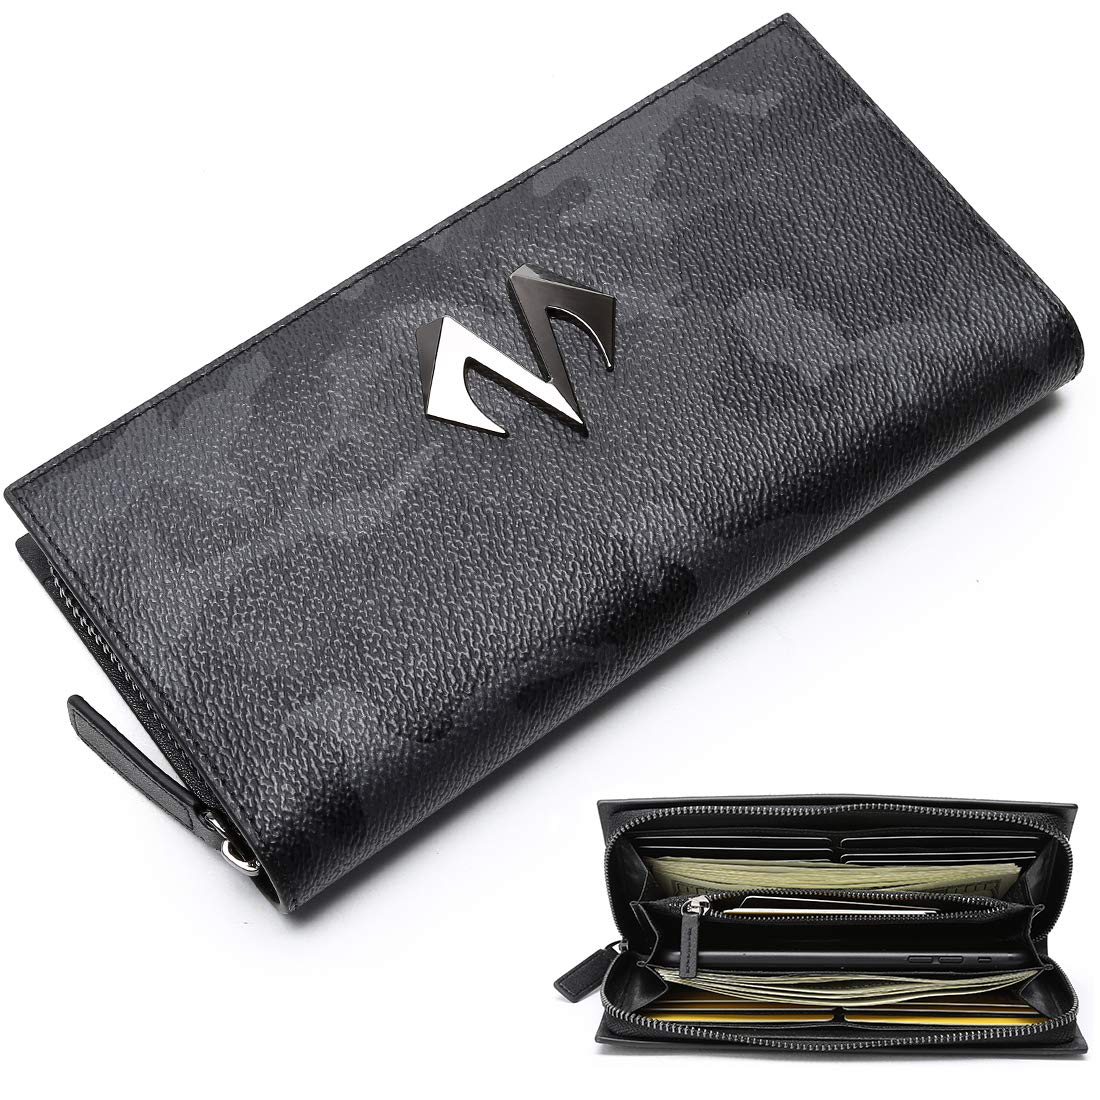 12a9776179a0 Babama Mens Zip Wallets Camo Leather Zip Around Bifold Long Wallet with  Coin Breast Pocket Fashionable Waterproof Purse for Boy at Amazon Men s  Clothing ...